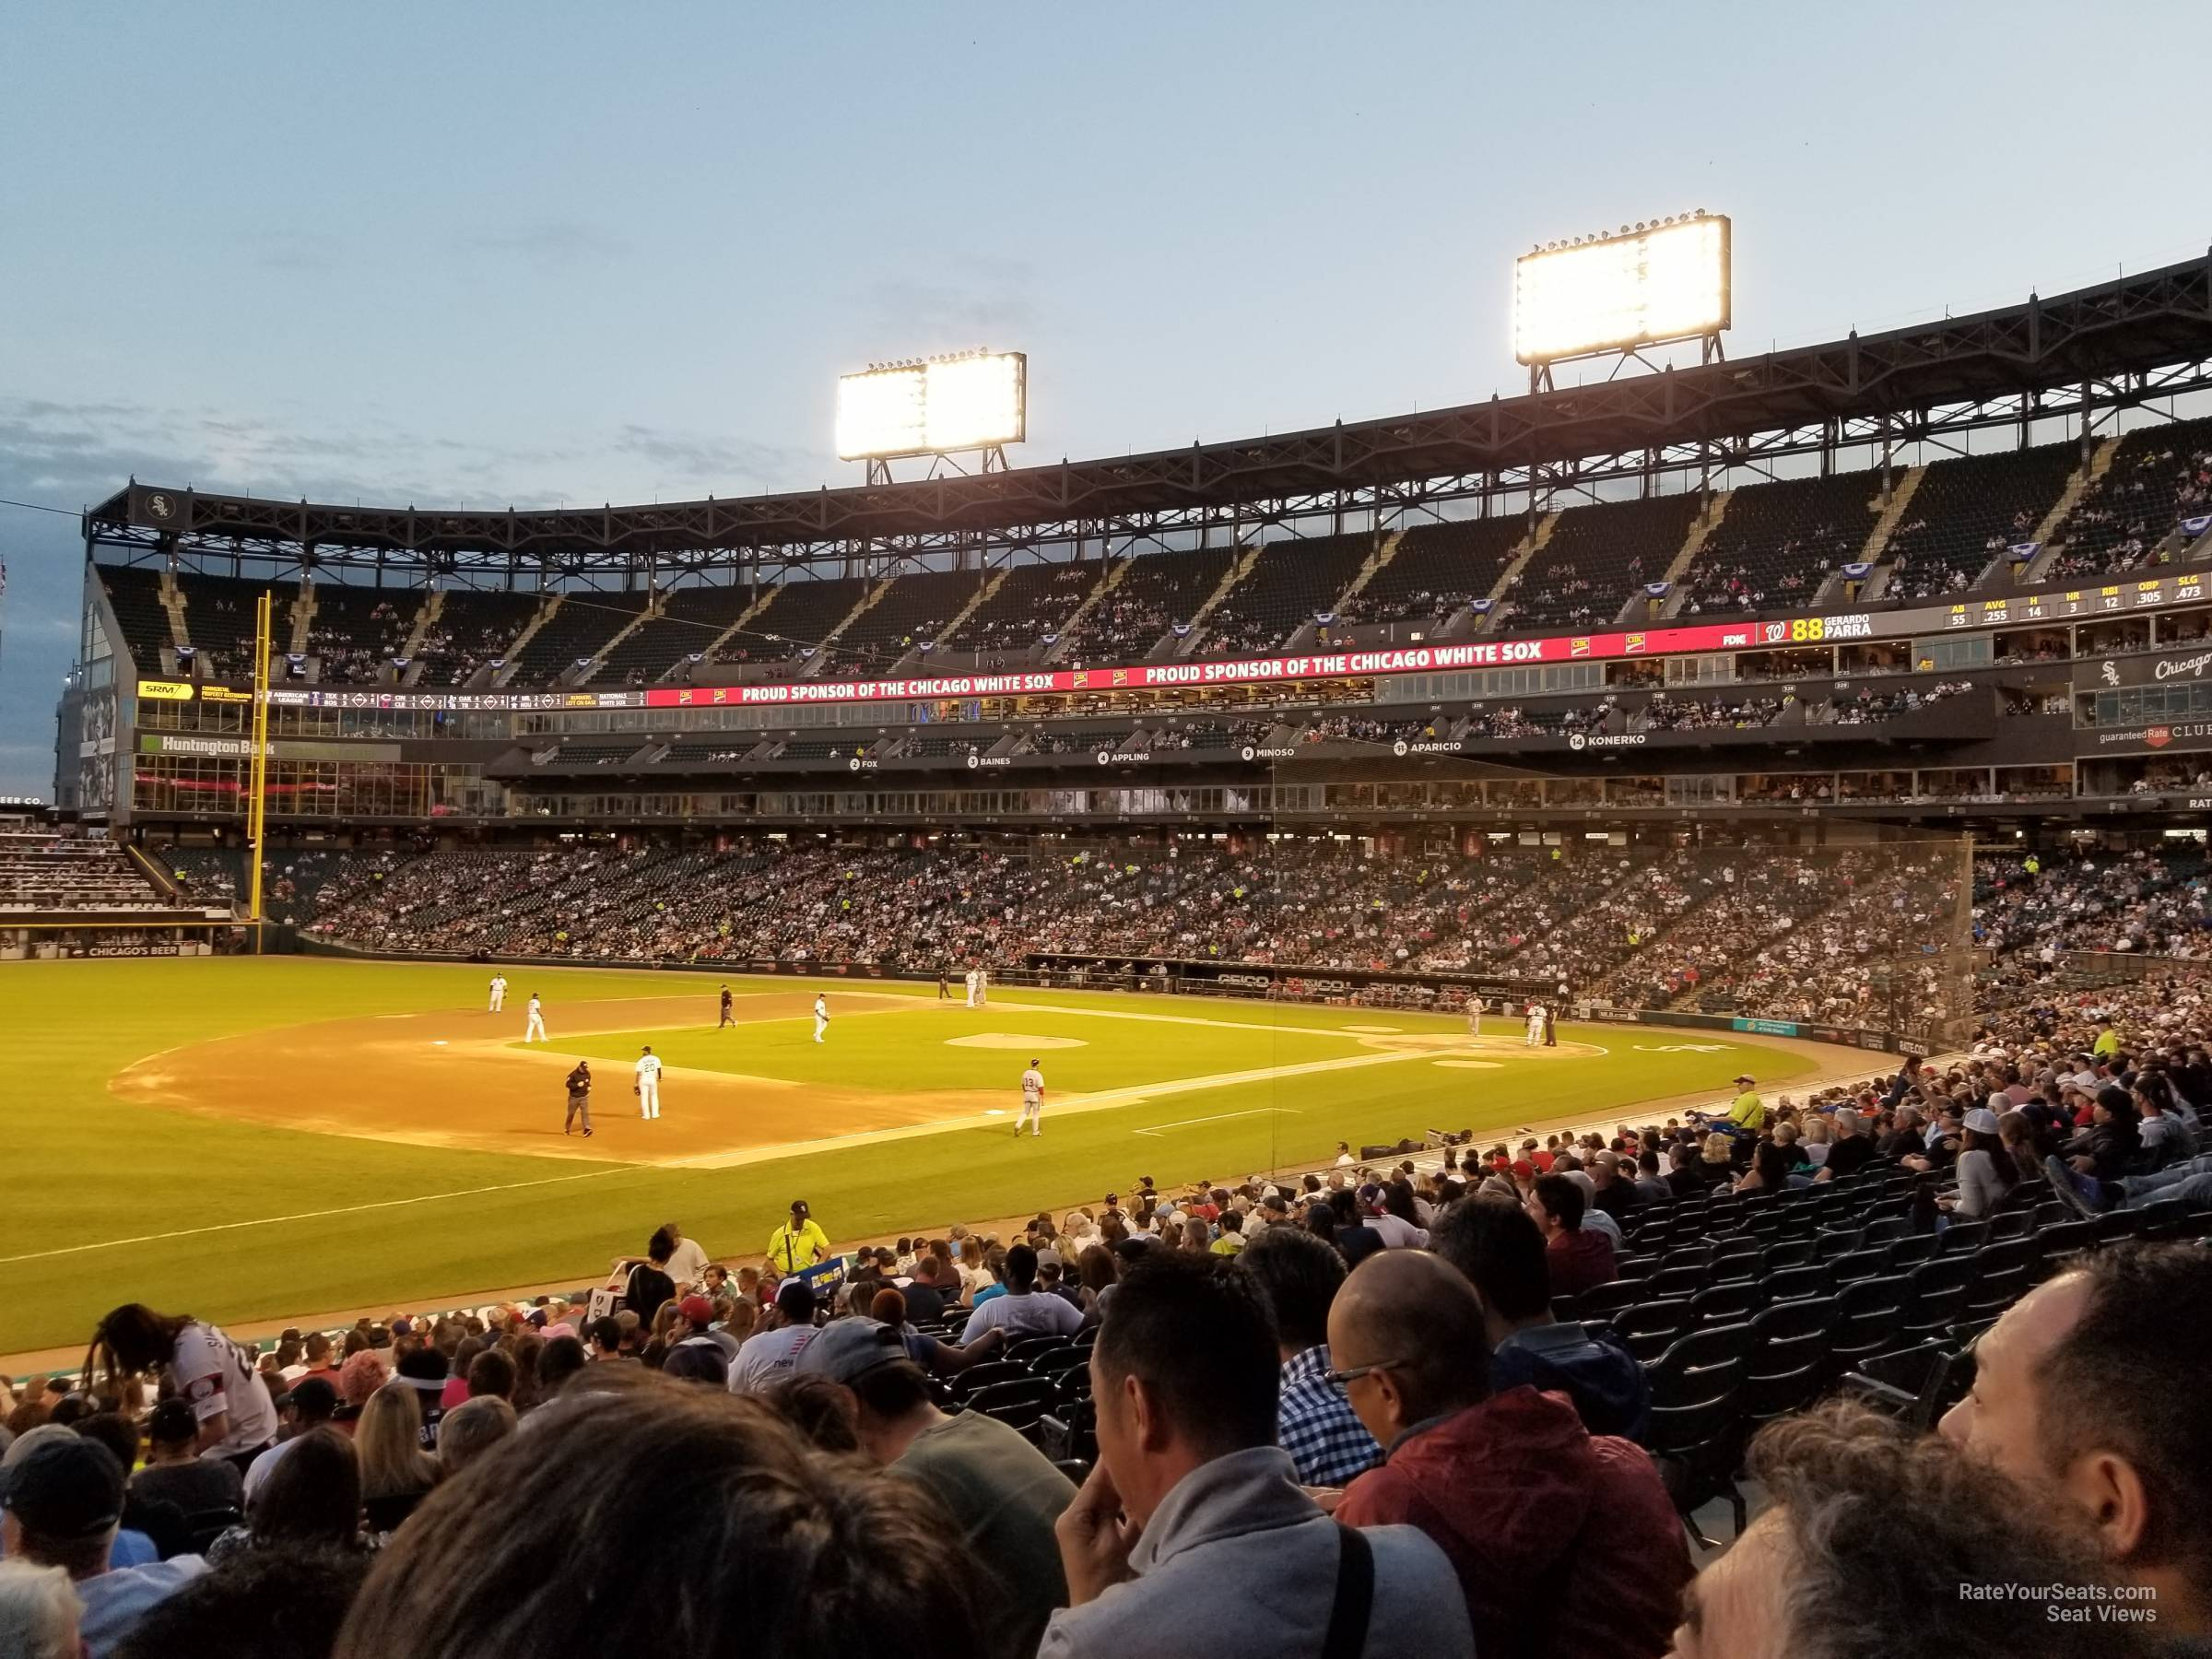 Section 146 seat view